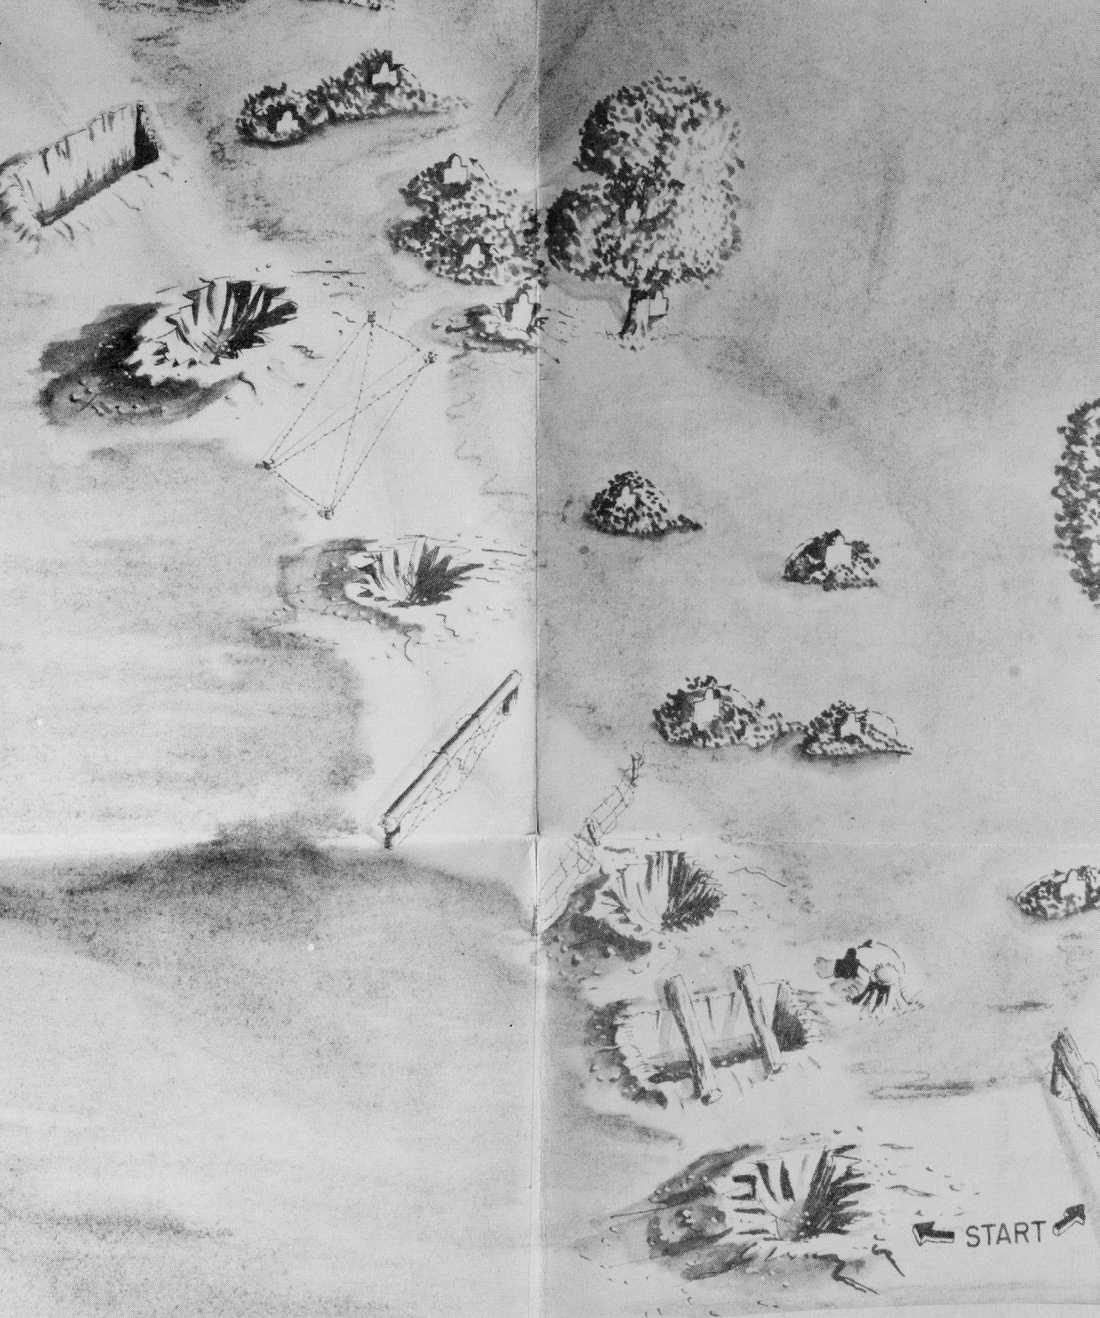 """Detail of """"Close Combat Course""""; Sketch to Accompany Inclosure 2 in 353.01/61–GnGTC (2-4-43); H.Q. A.G.F. to all Commanding Generals (February, 4 1943) """"Subject: Special Battle Courses""""; Training Directives; Background Files: """"Military Training in WWII"""" 1939-1945; Record Group 319, National Archives Building, College Park, M.D."""